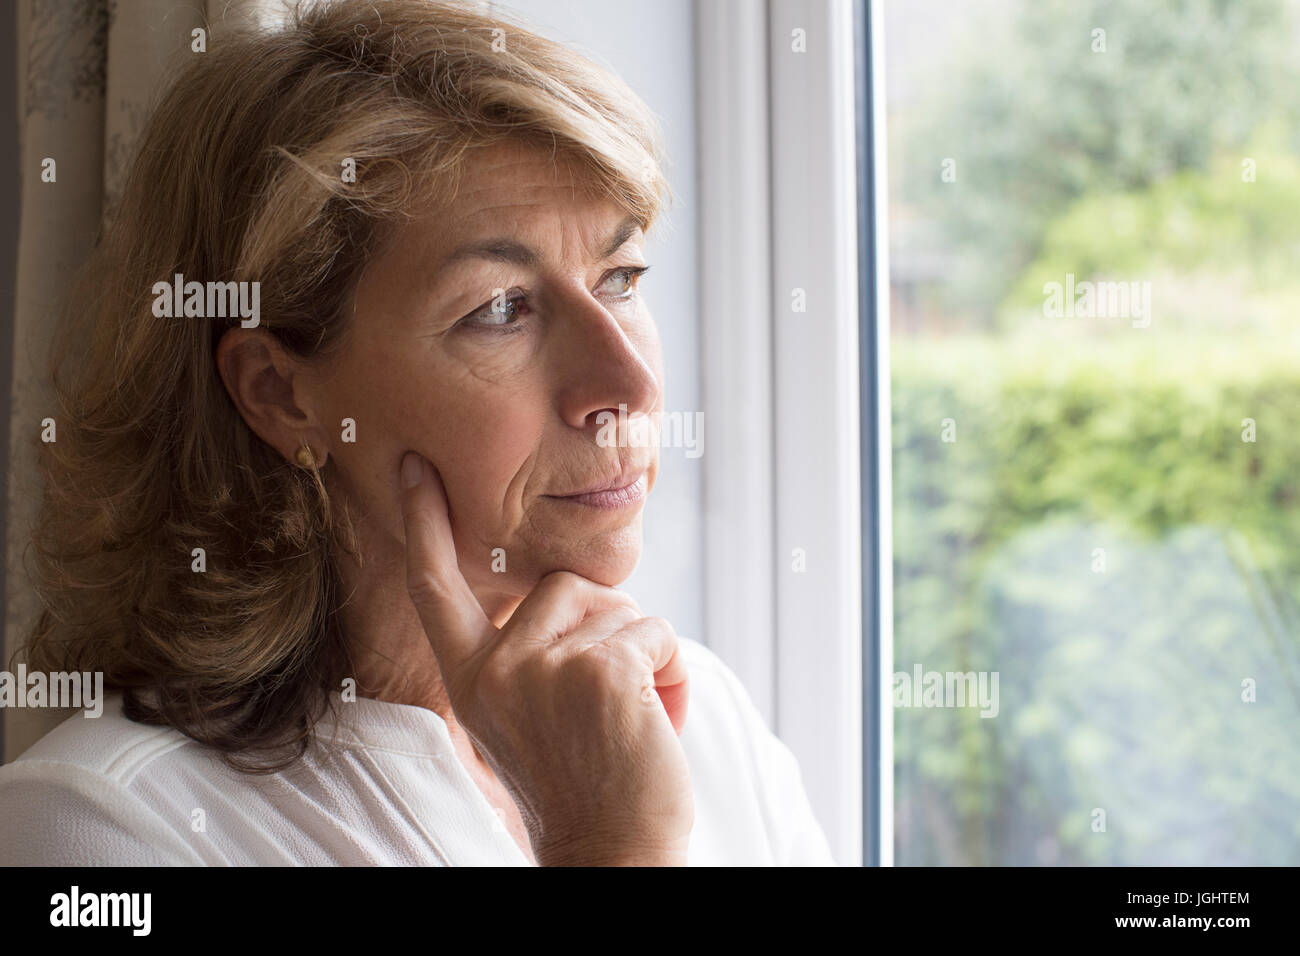 Sad Woman Suffering From Agoraphobia Looking Out Of Window - Stock Image